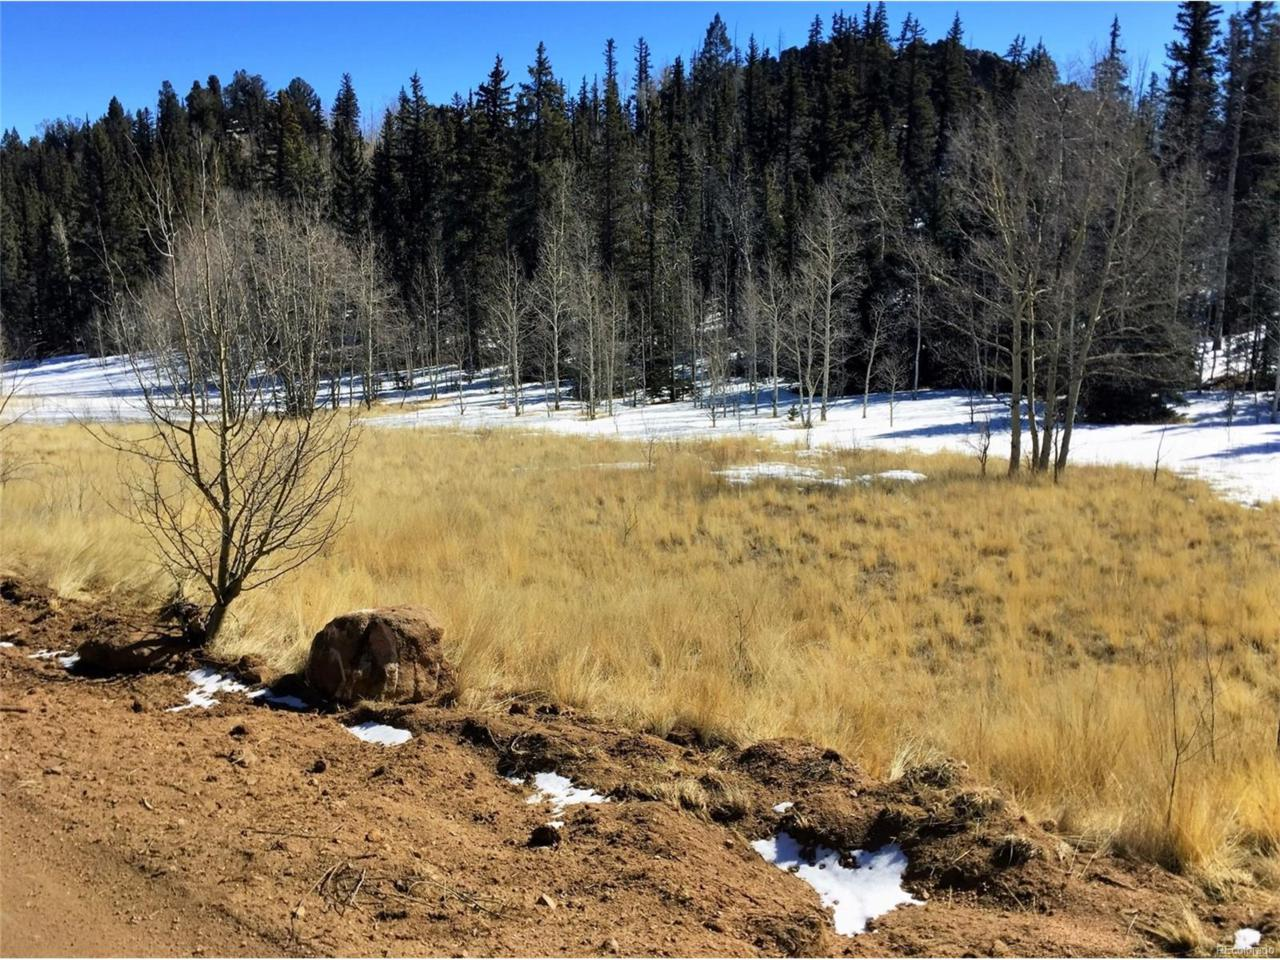 238 Spearpoint Road, Como, CO 80432 (MLS #9633906) :: 8z Real Estate